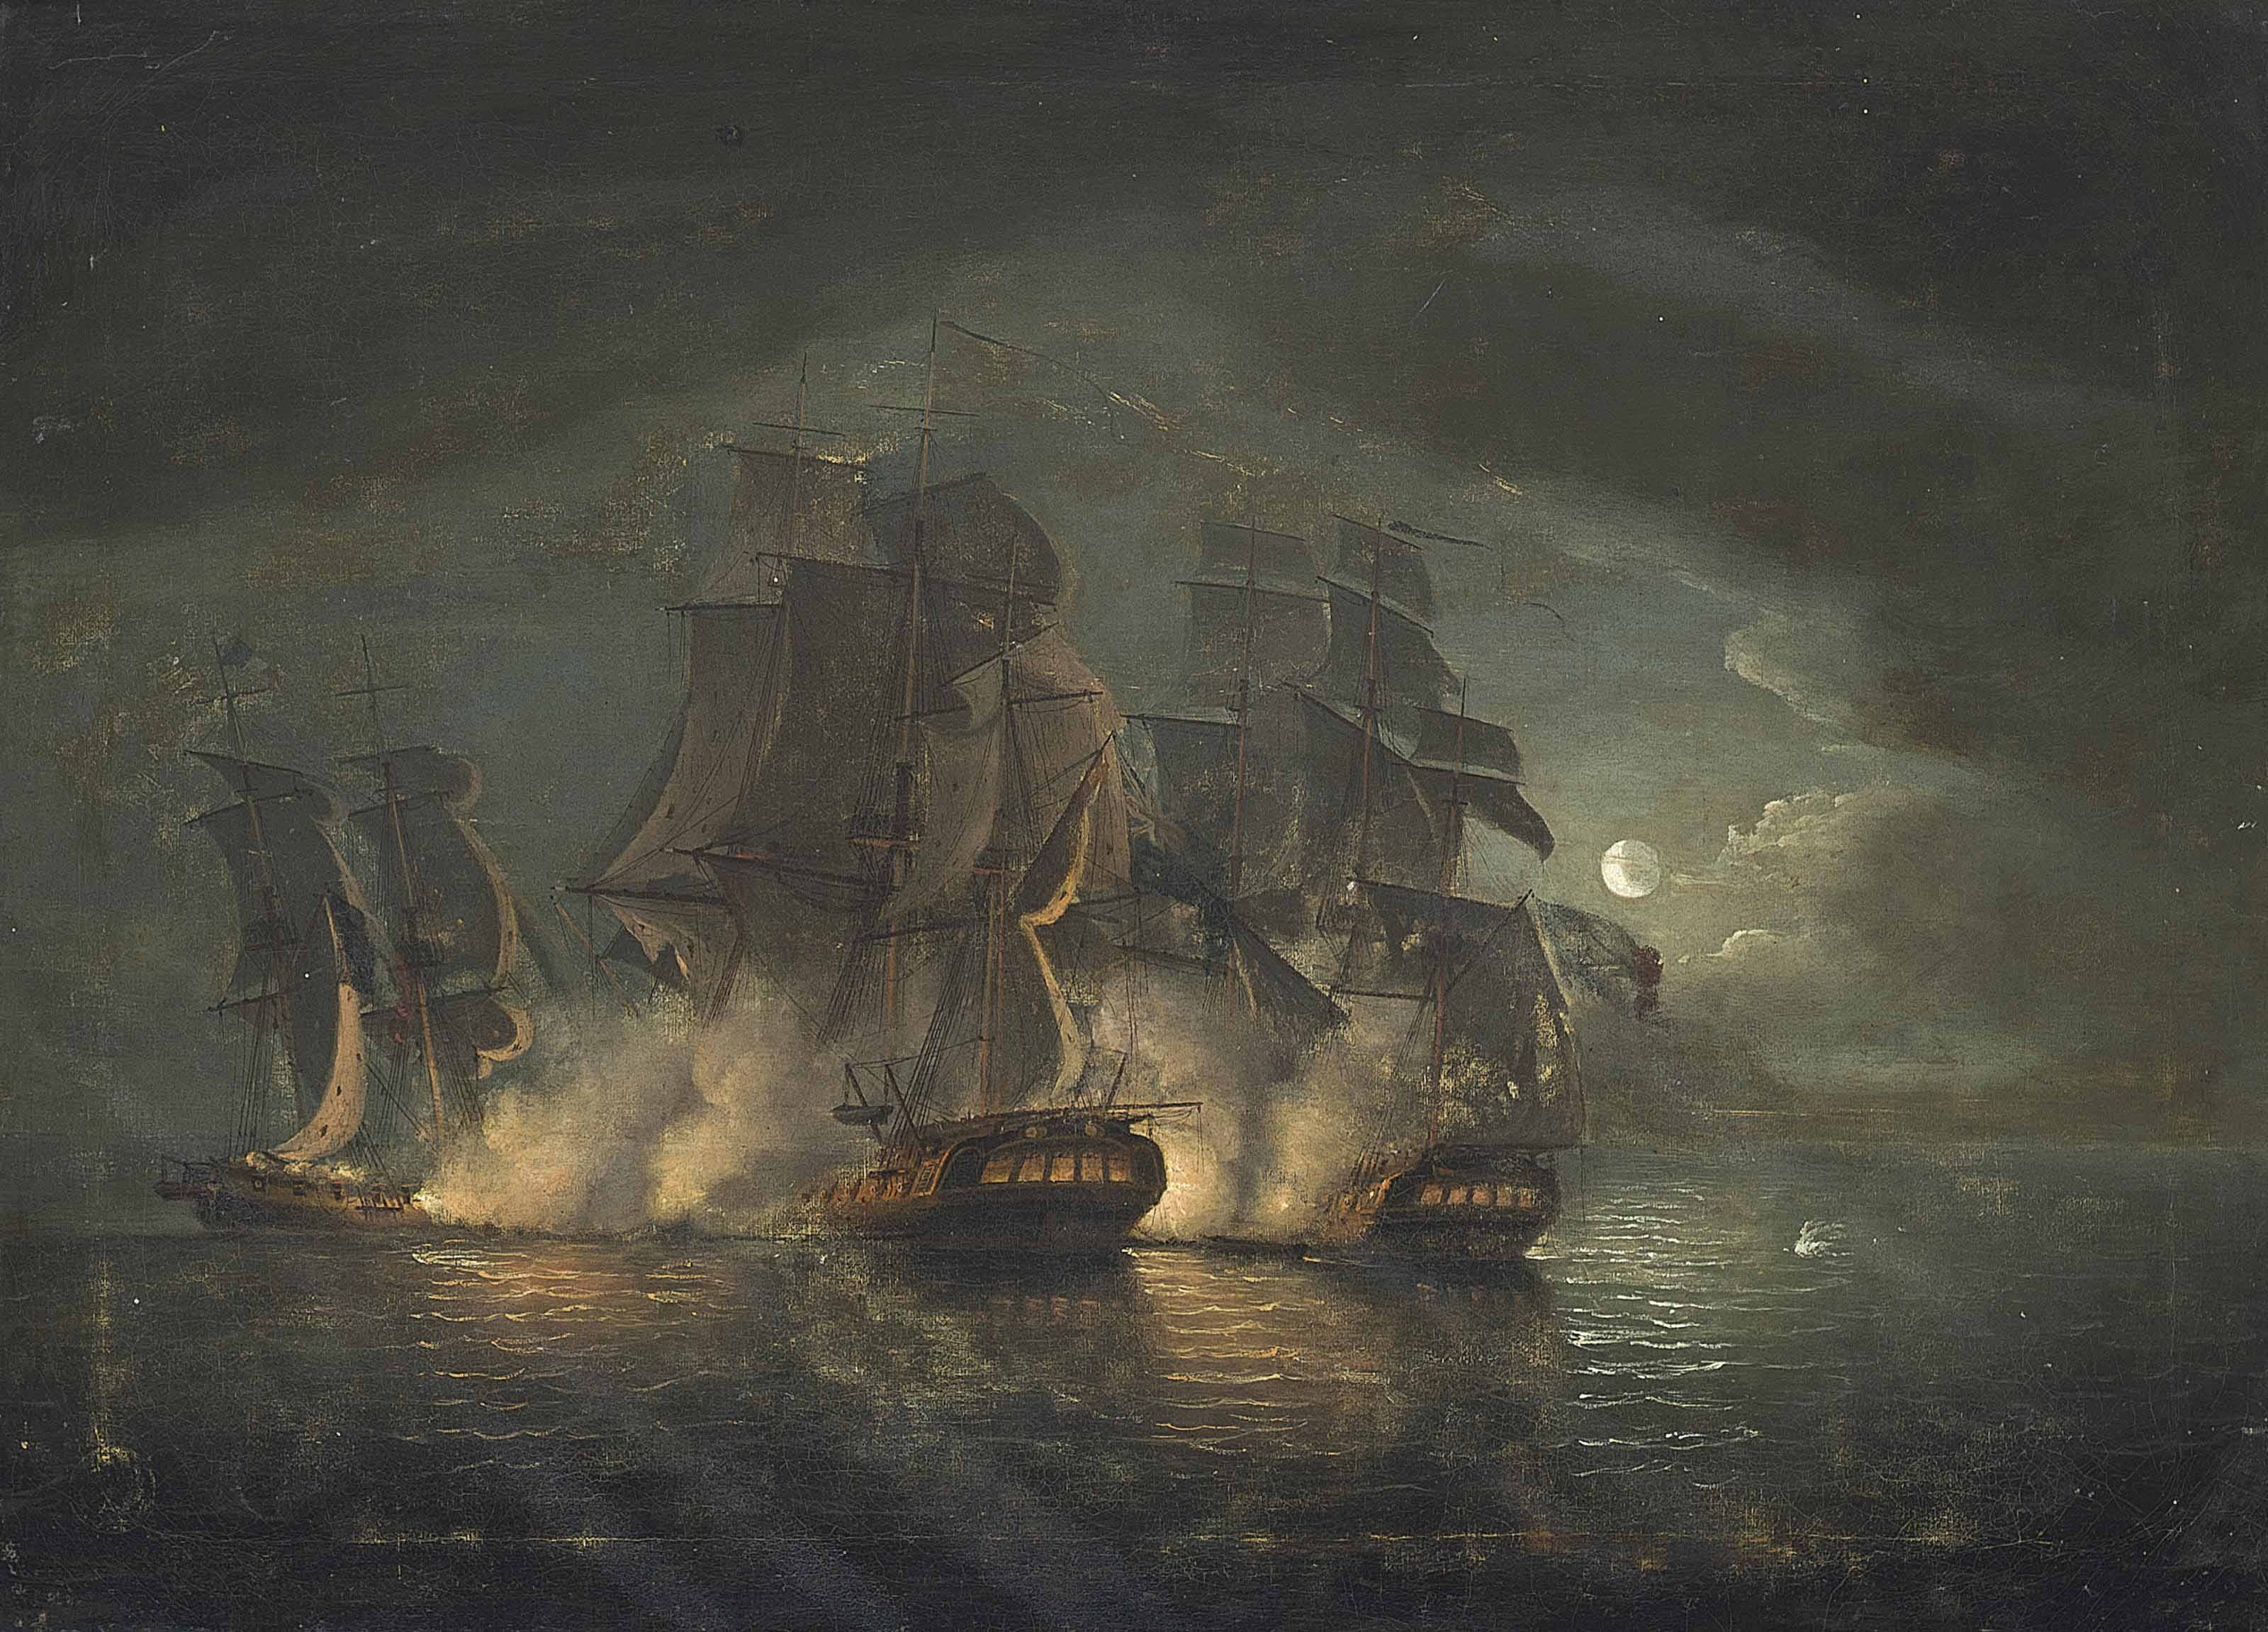 An Anglo-French engagement by moonlight